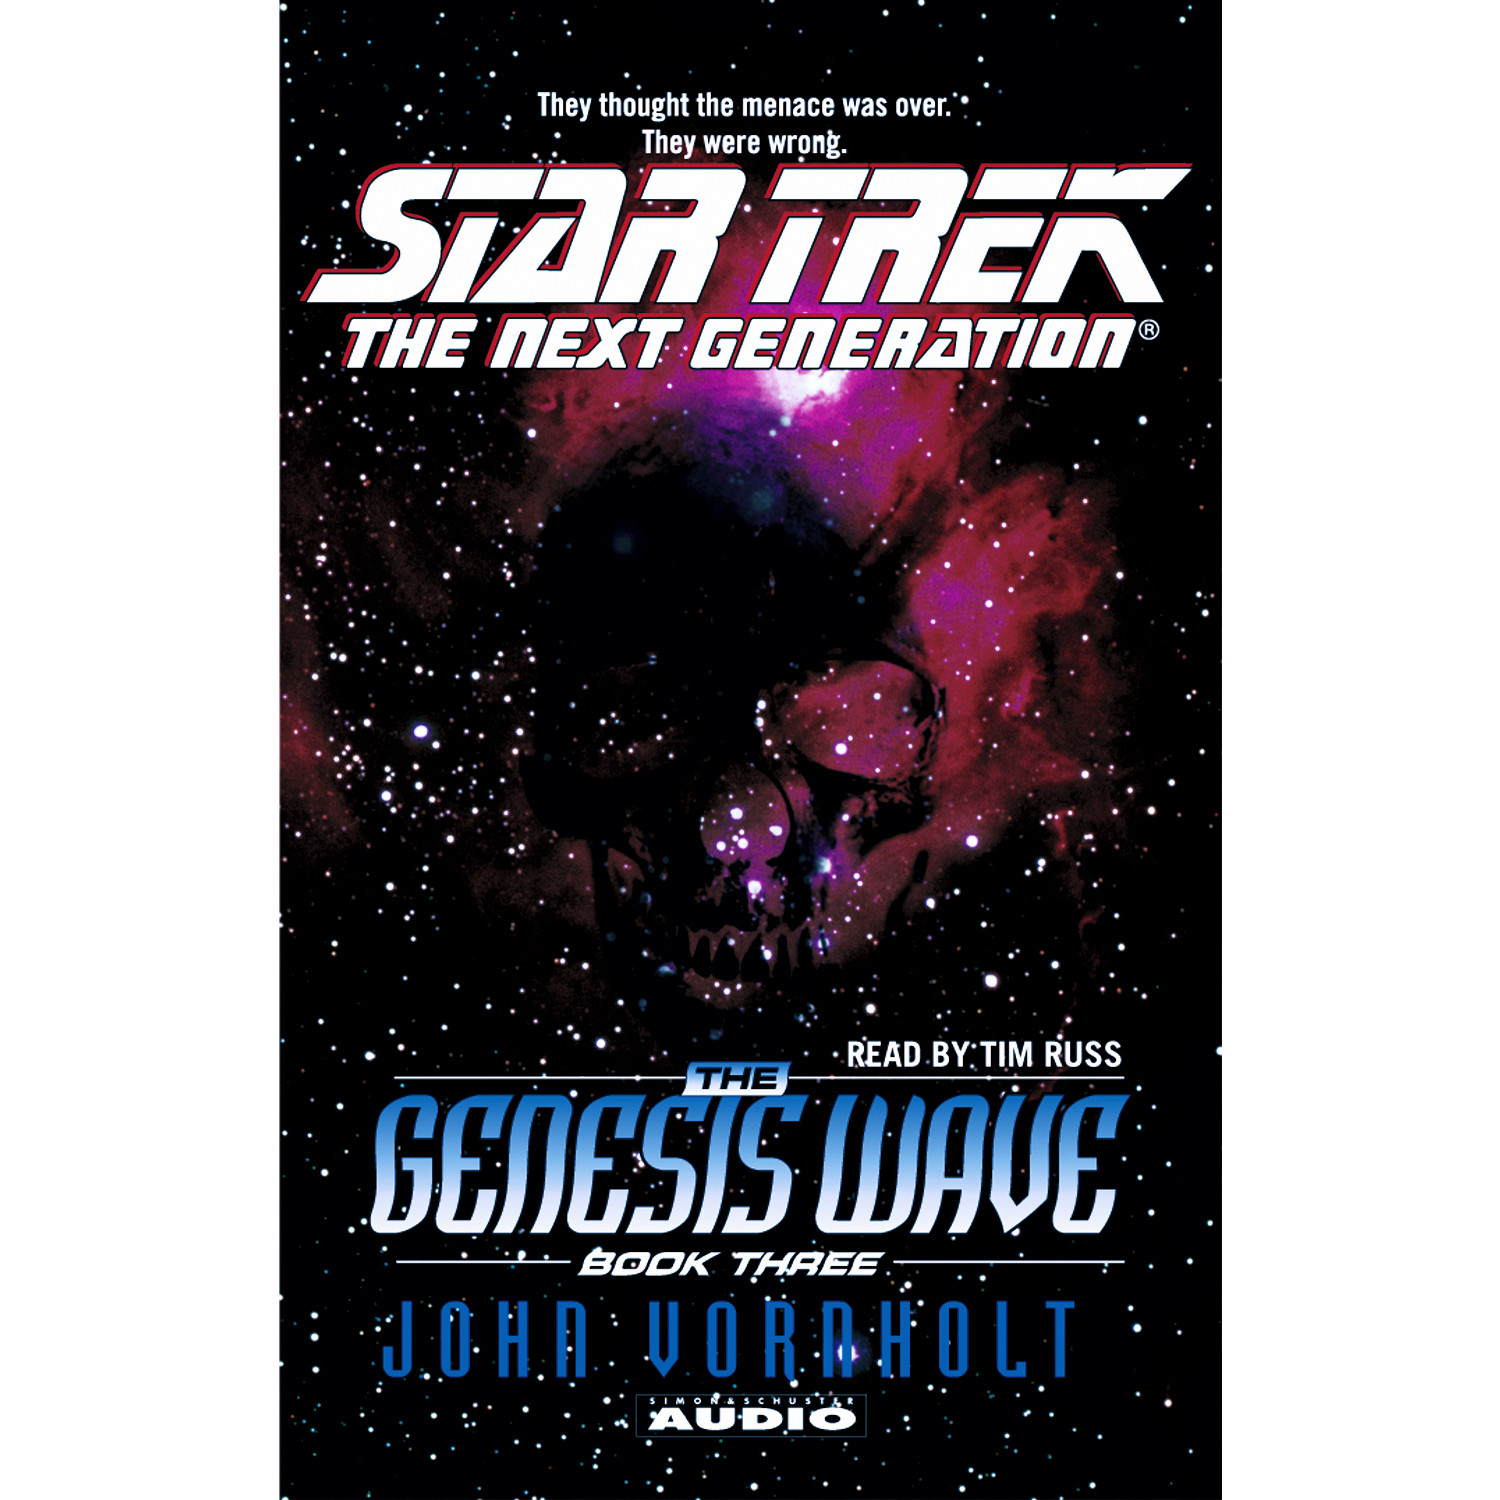 Printable The Star Trek: The Next Generation: The Genesis Wave Book 3: Book 3 Audiobook Cover Art